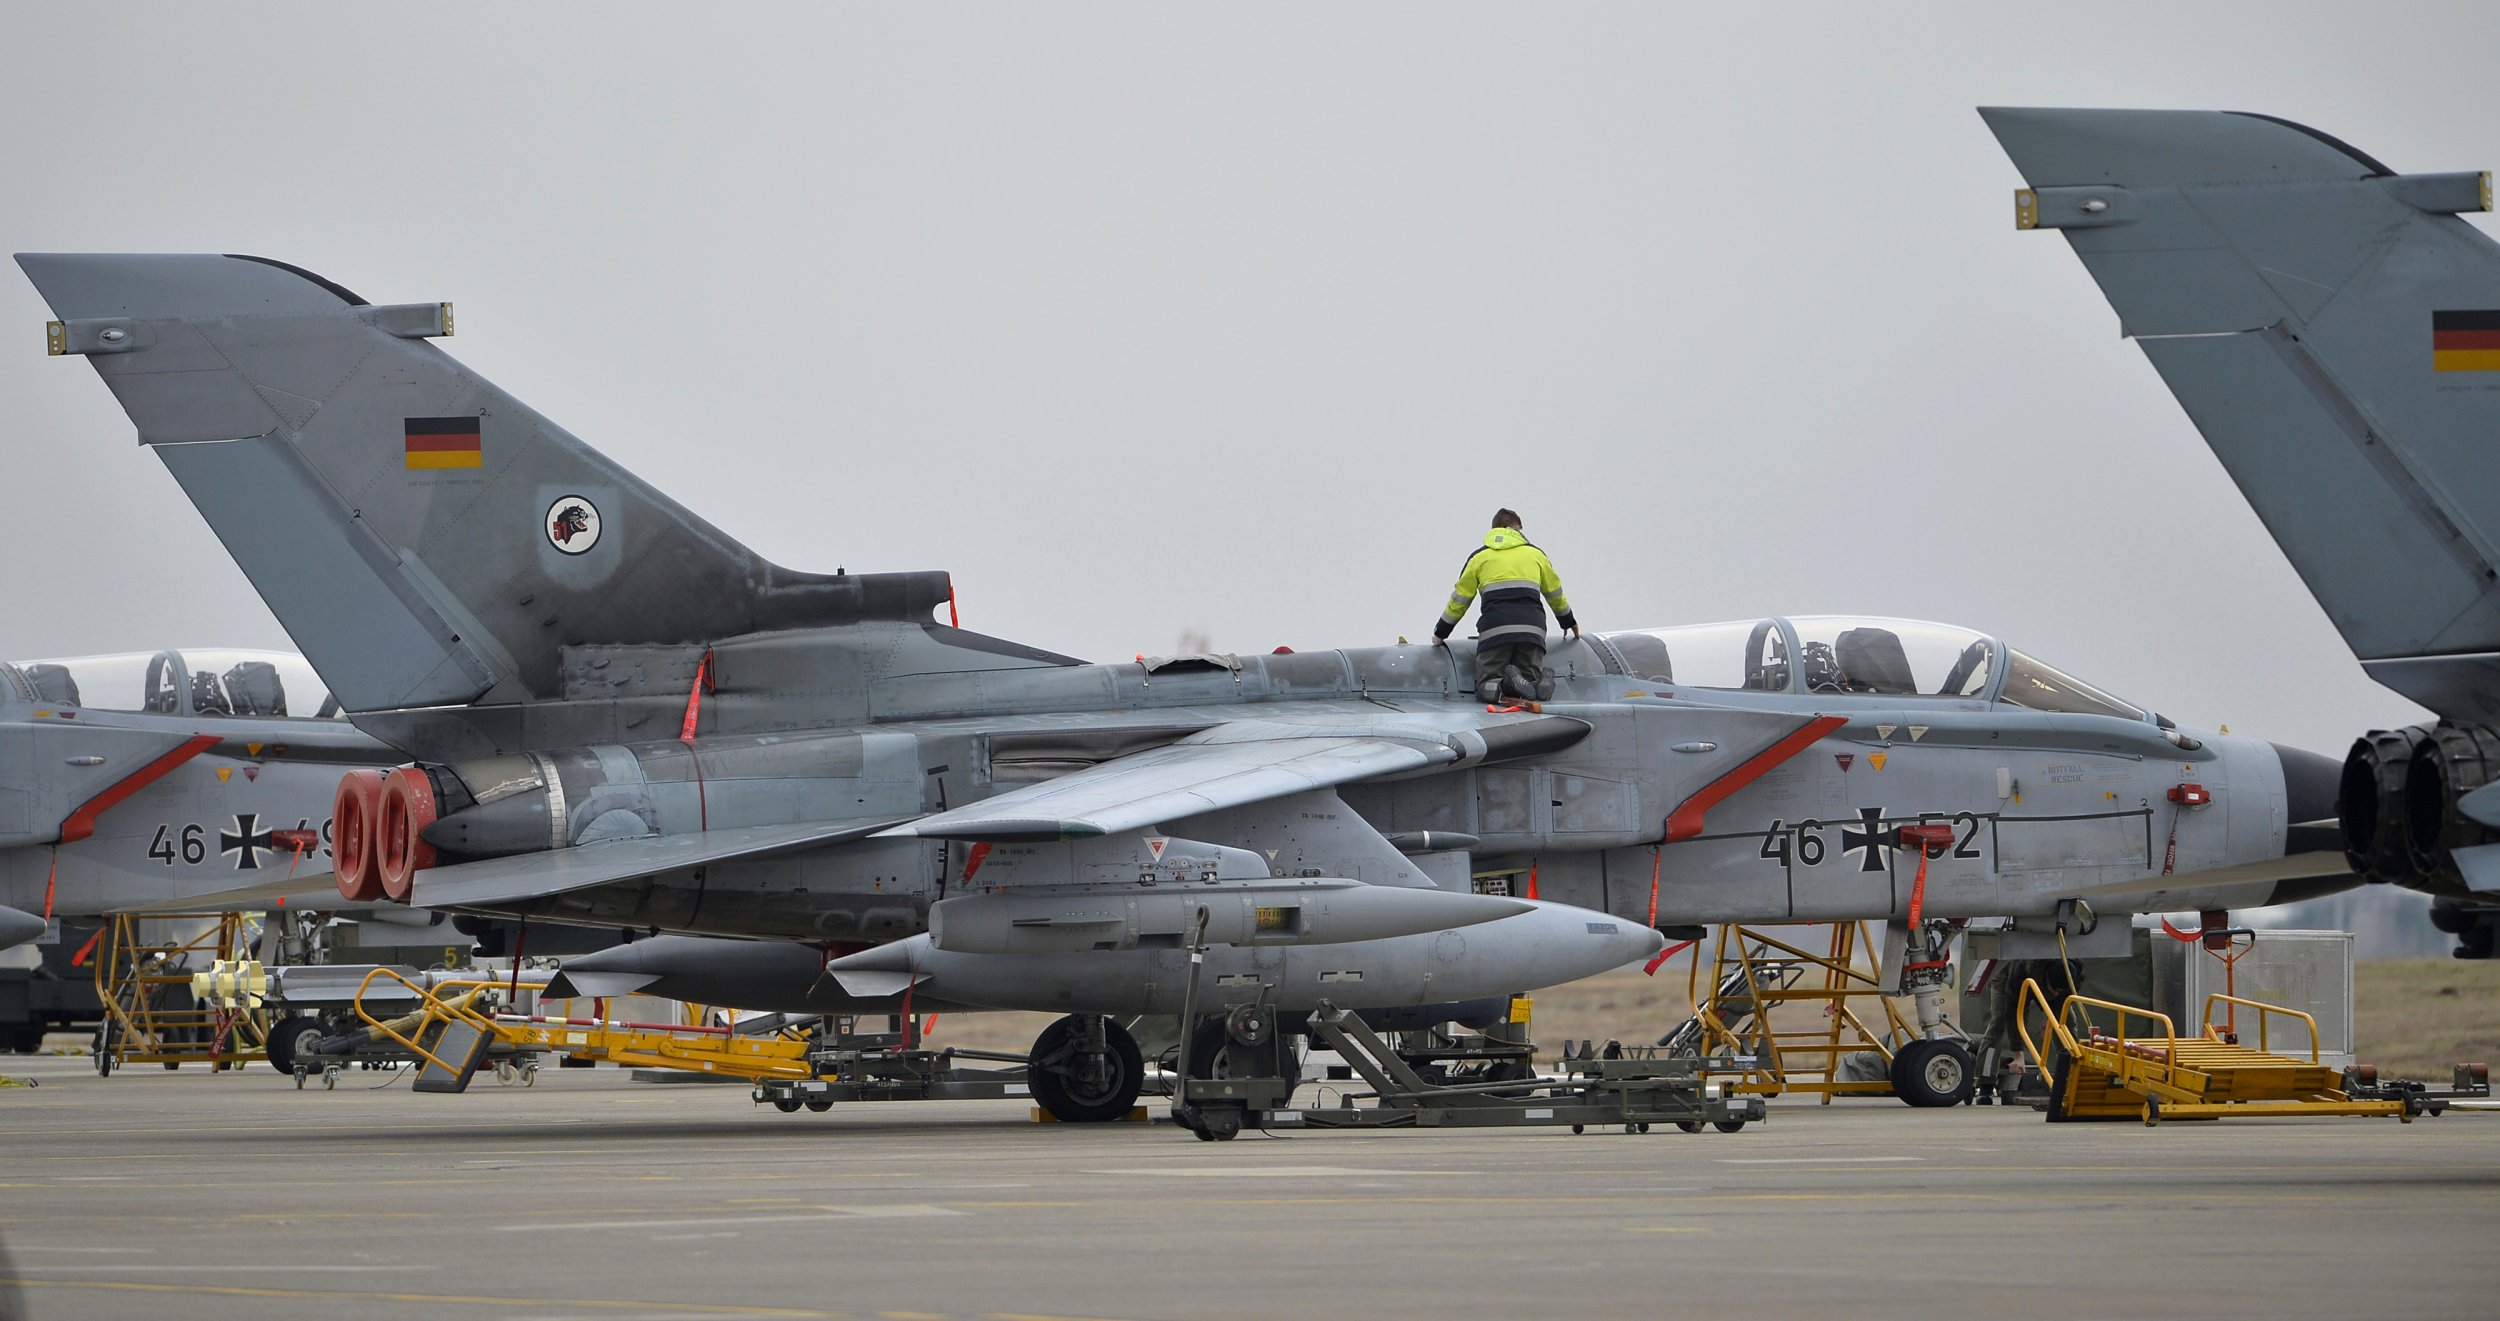 German Tornado jet sits landed on an air strip